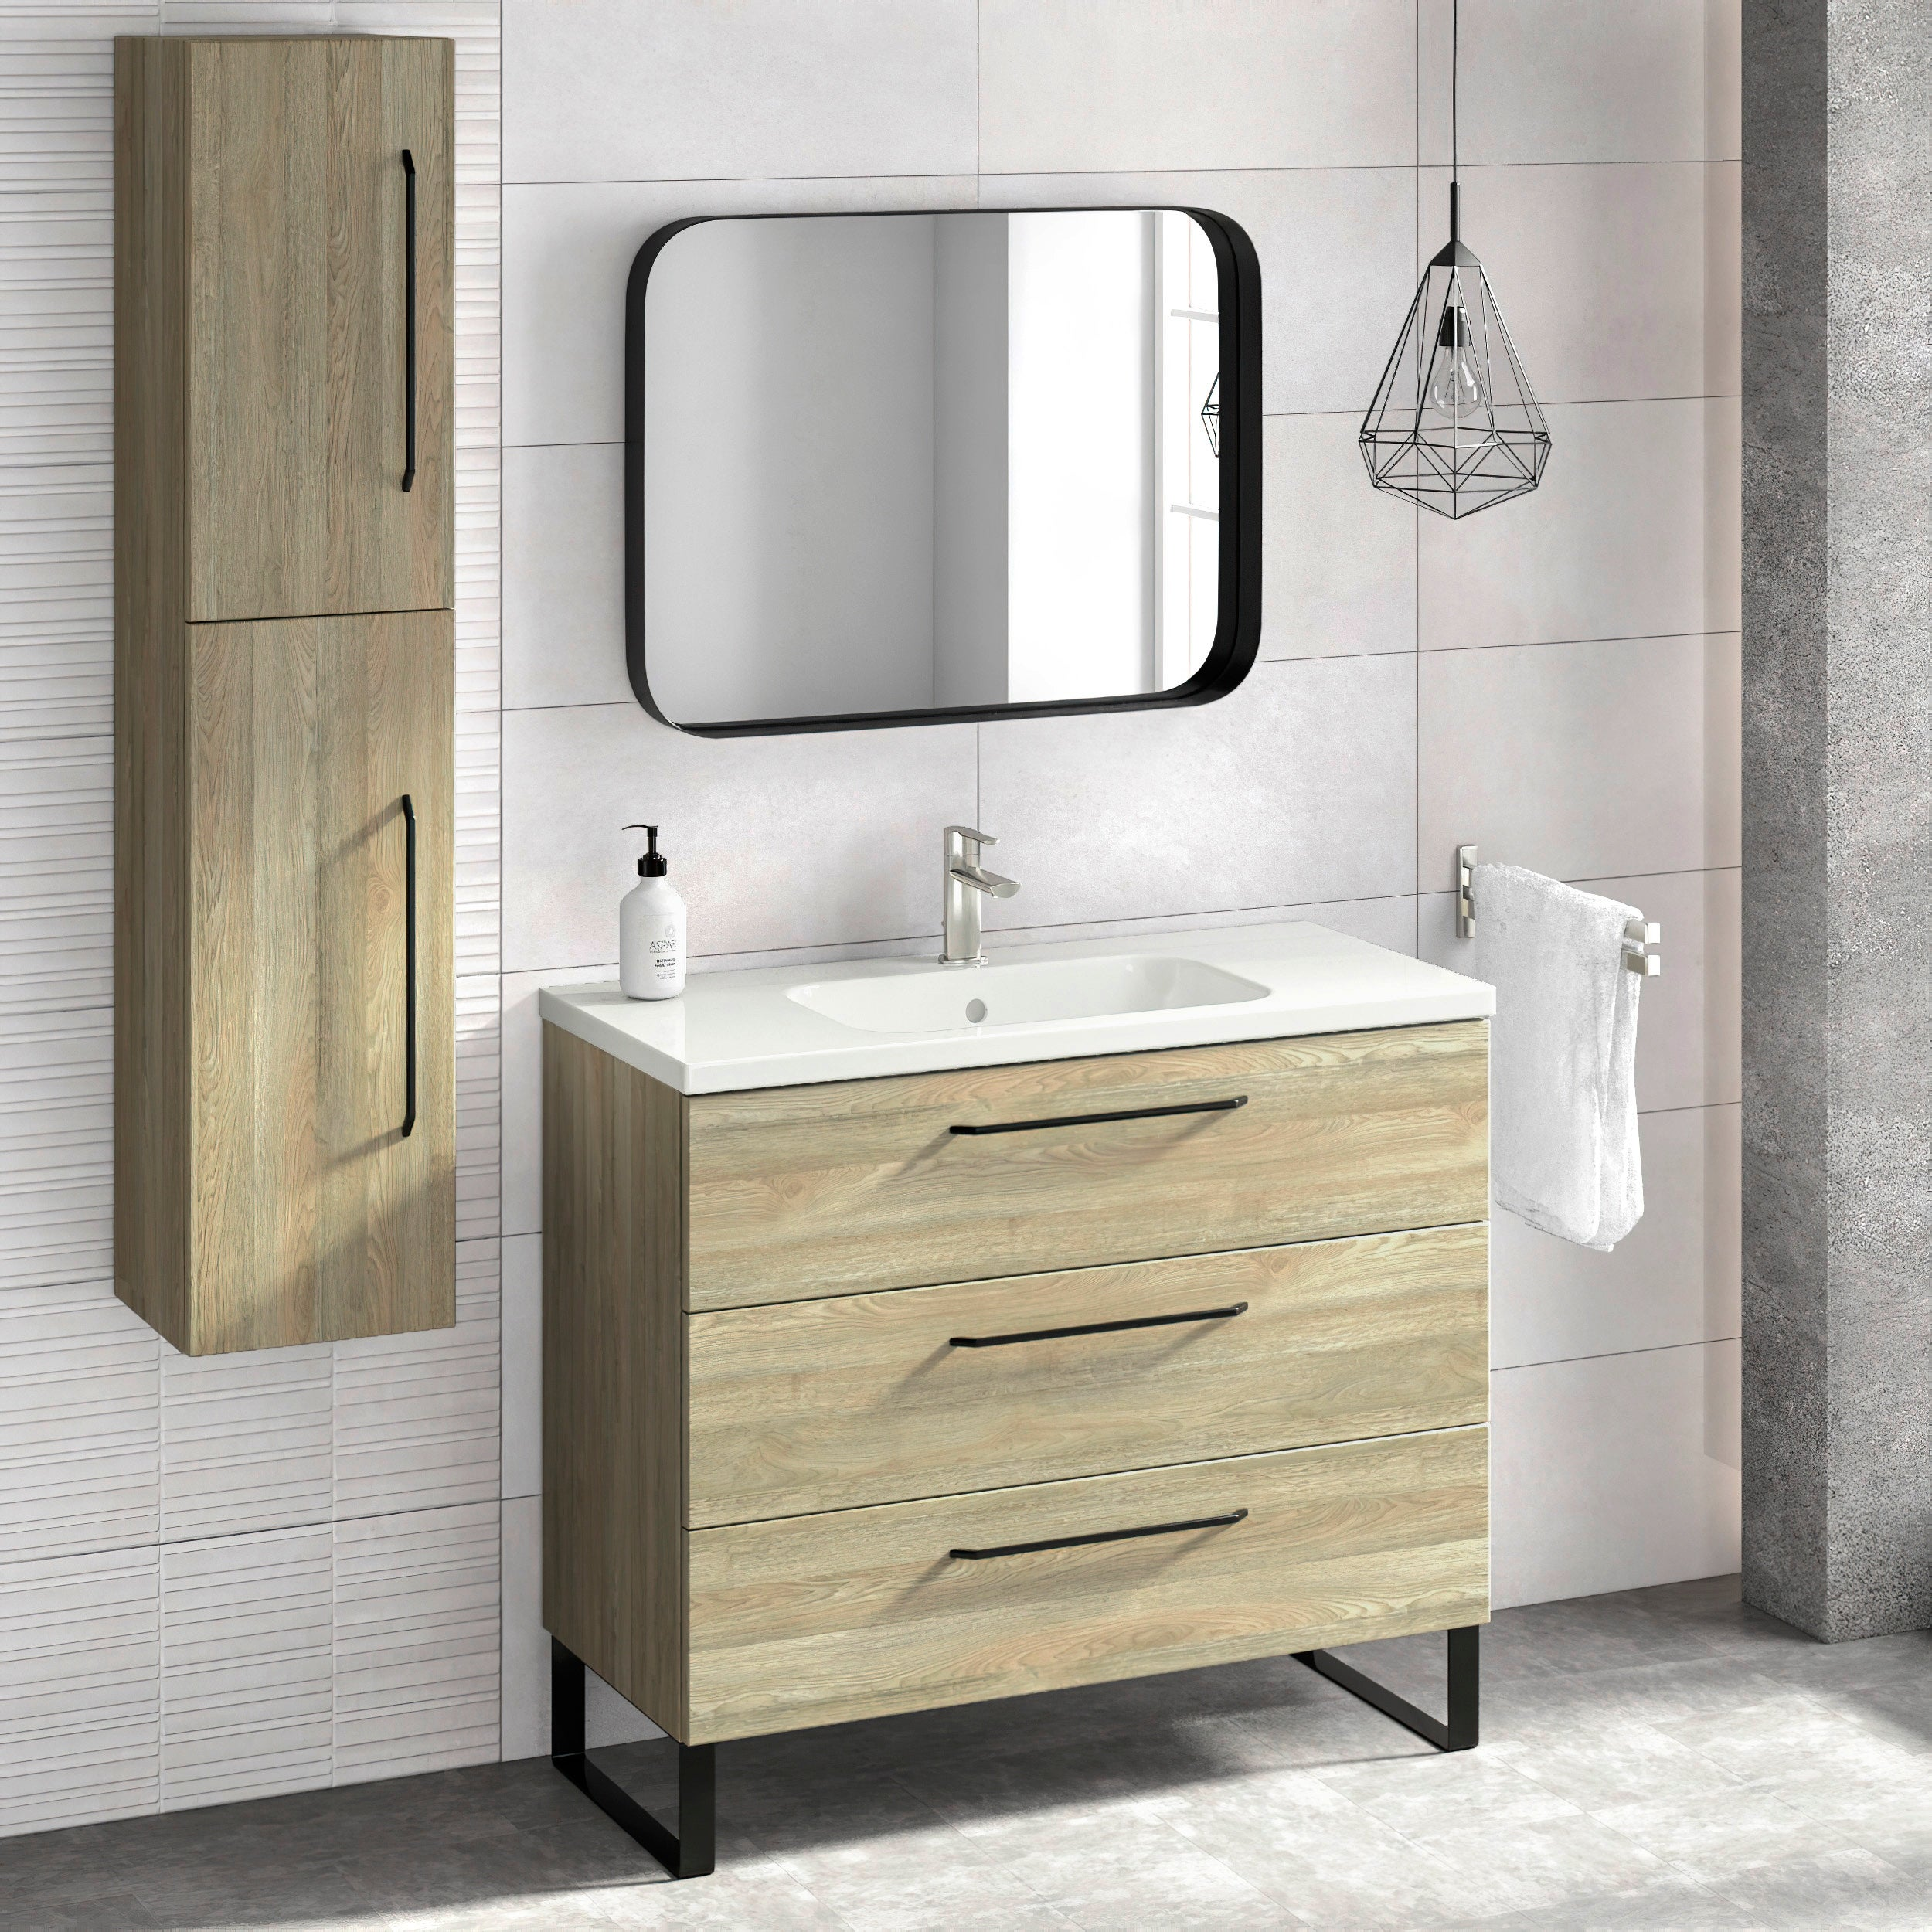 Shop For 40 Bathroom Vanity Freestanding Cabinet Sink Legs Denver 3 Drawers W40 X H35 X D18 In Toasted Oak Wood Get Free Delivery On Everything At Overstock Your Online Furniture Outlet Store Get 5 In Rewards With Club O 31758363